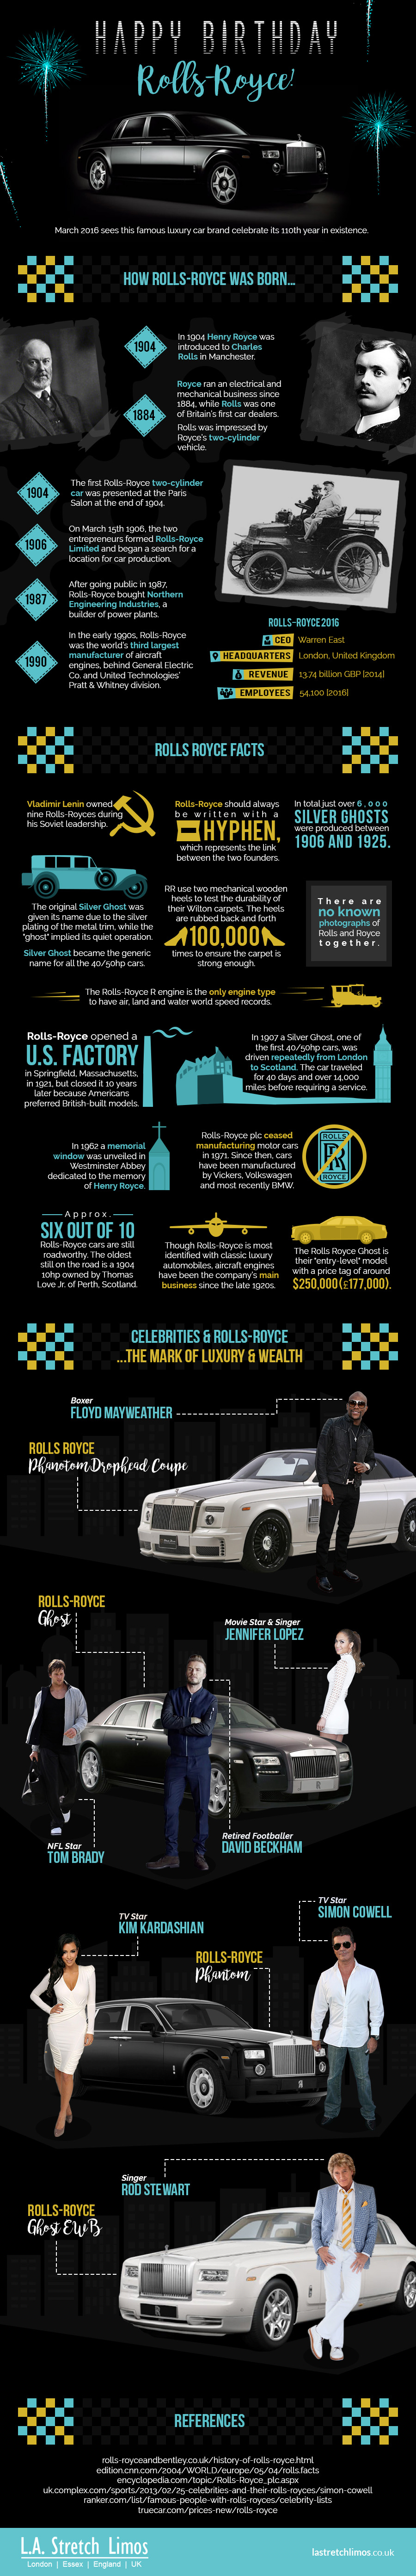 Happy Birthday Rolls-Royce infographic